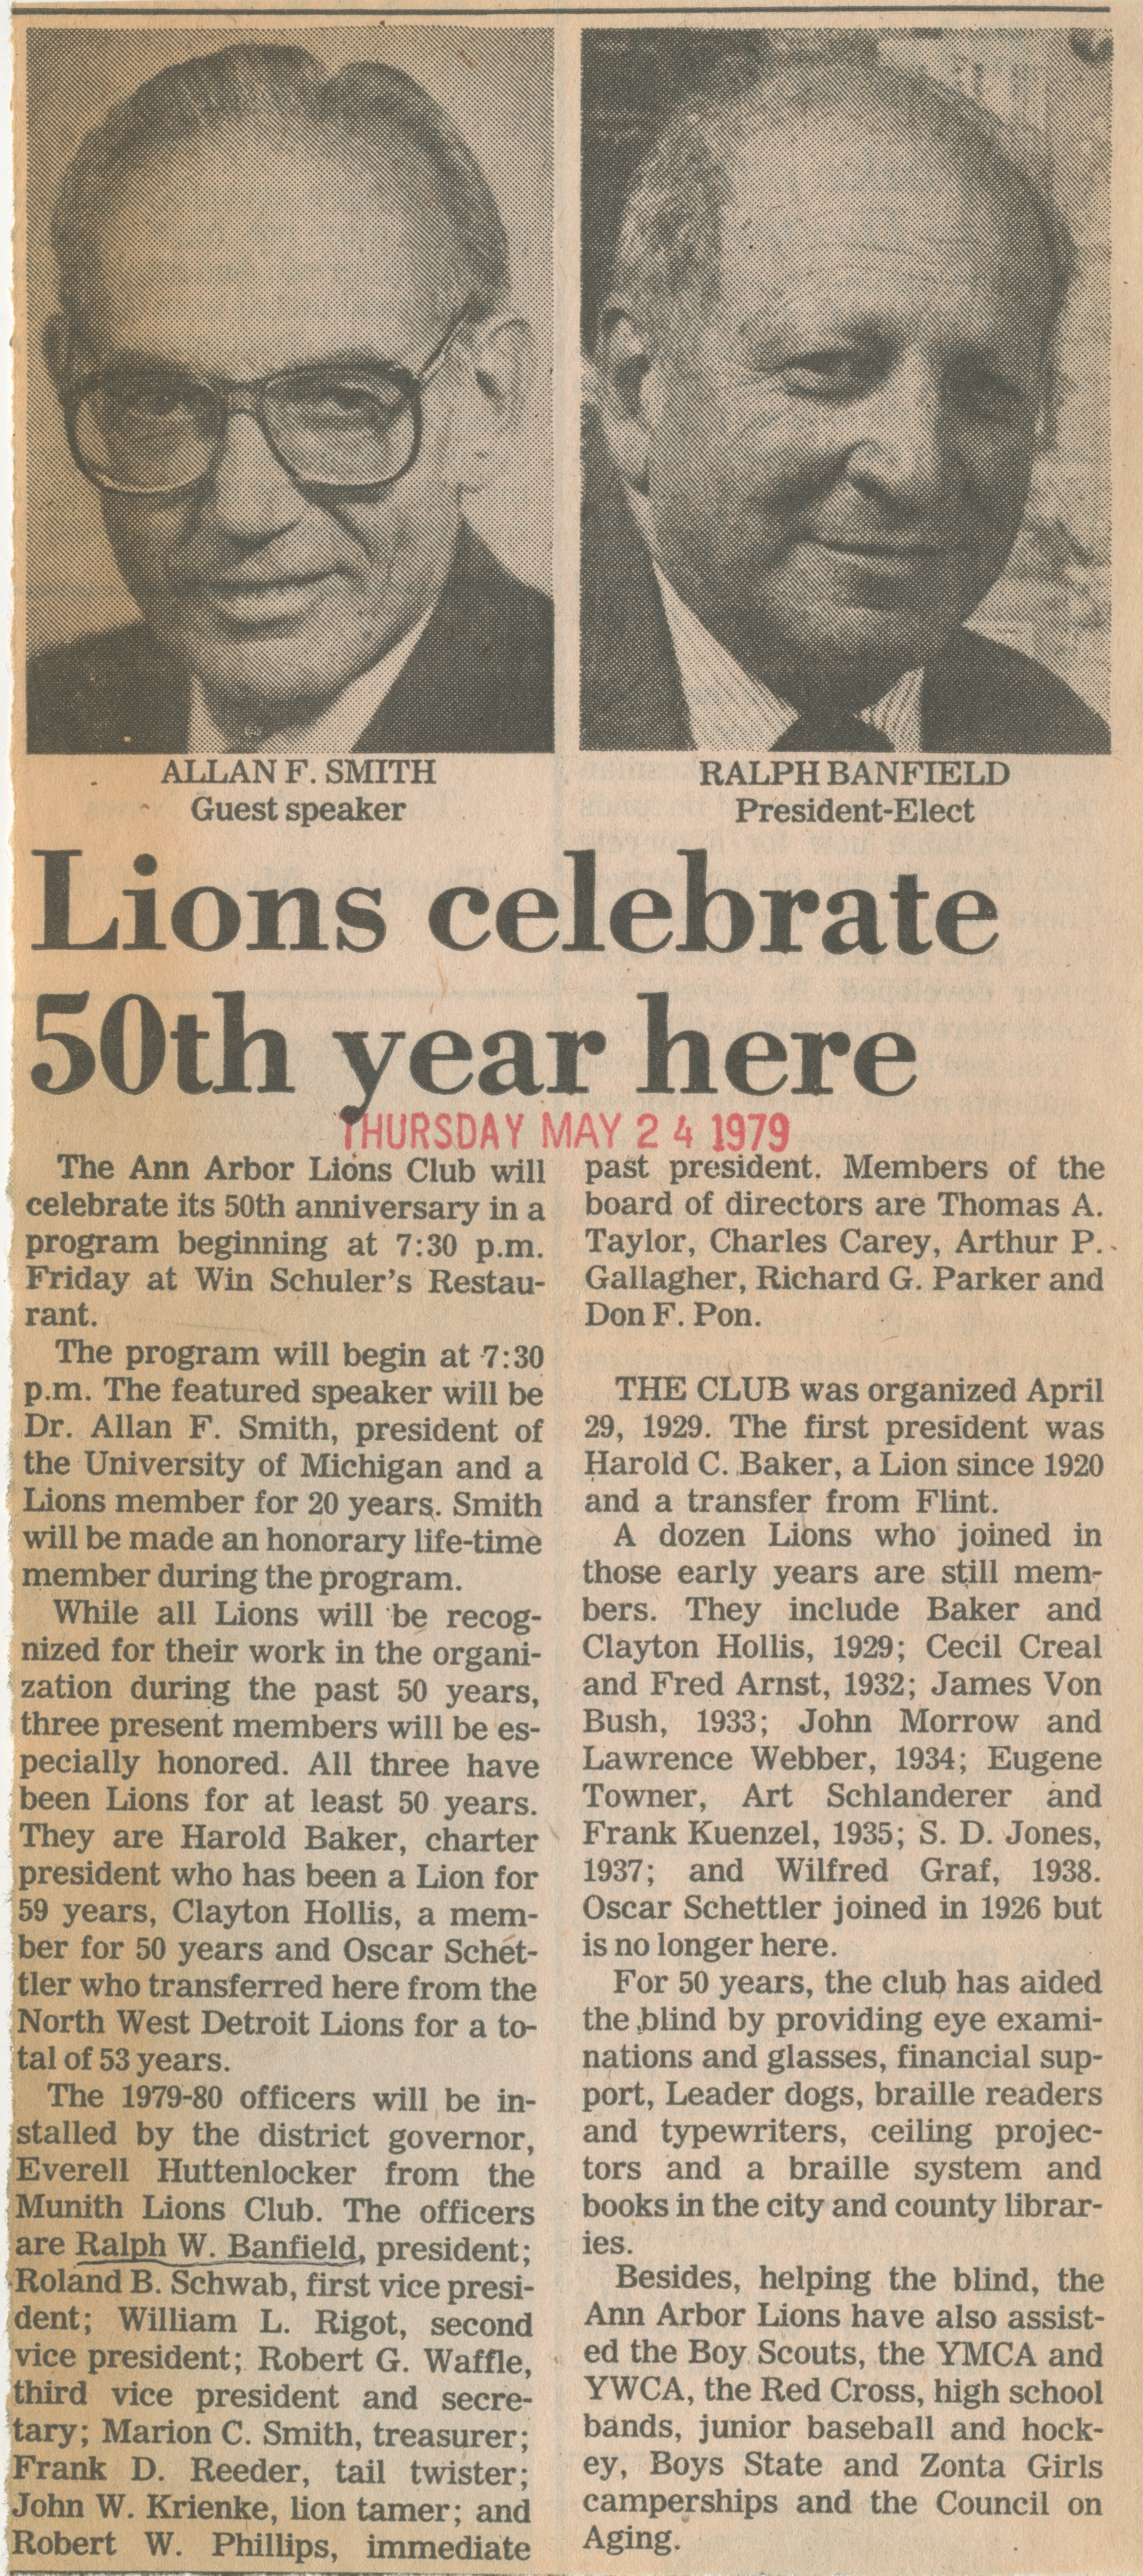 Lions celebrate 50th year here image